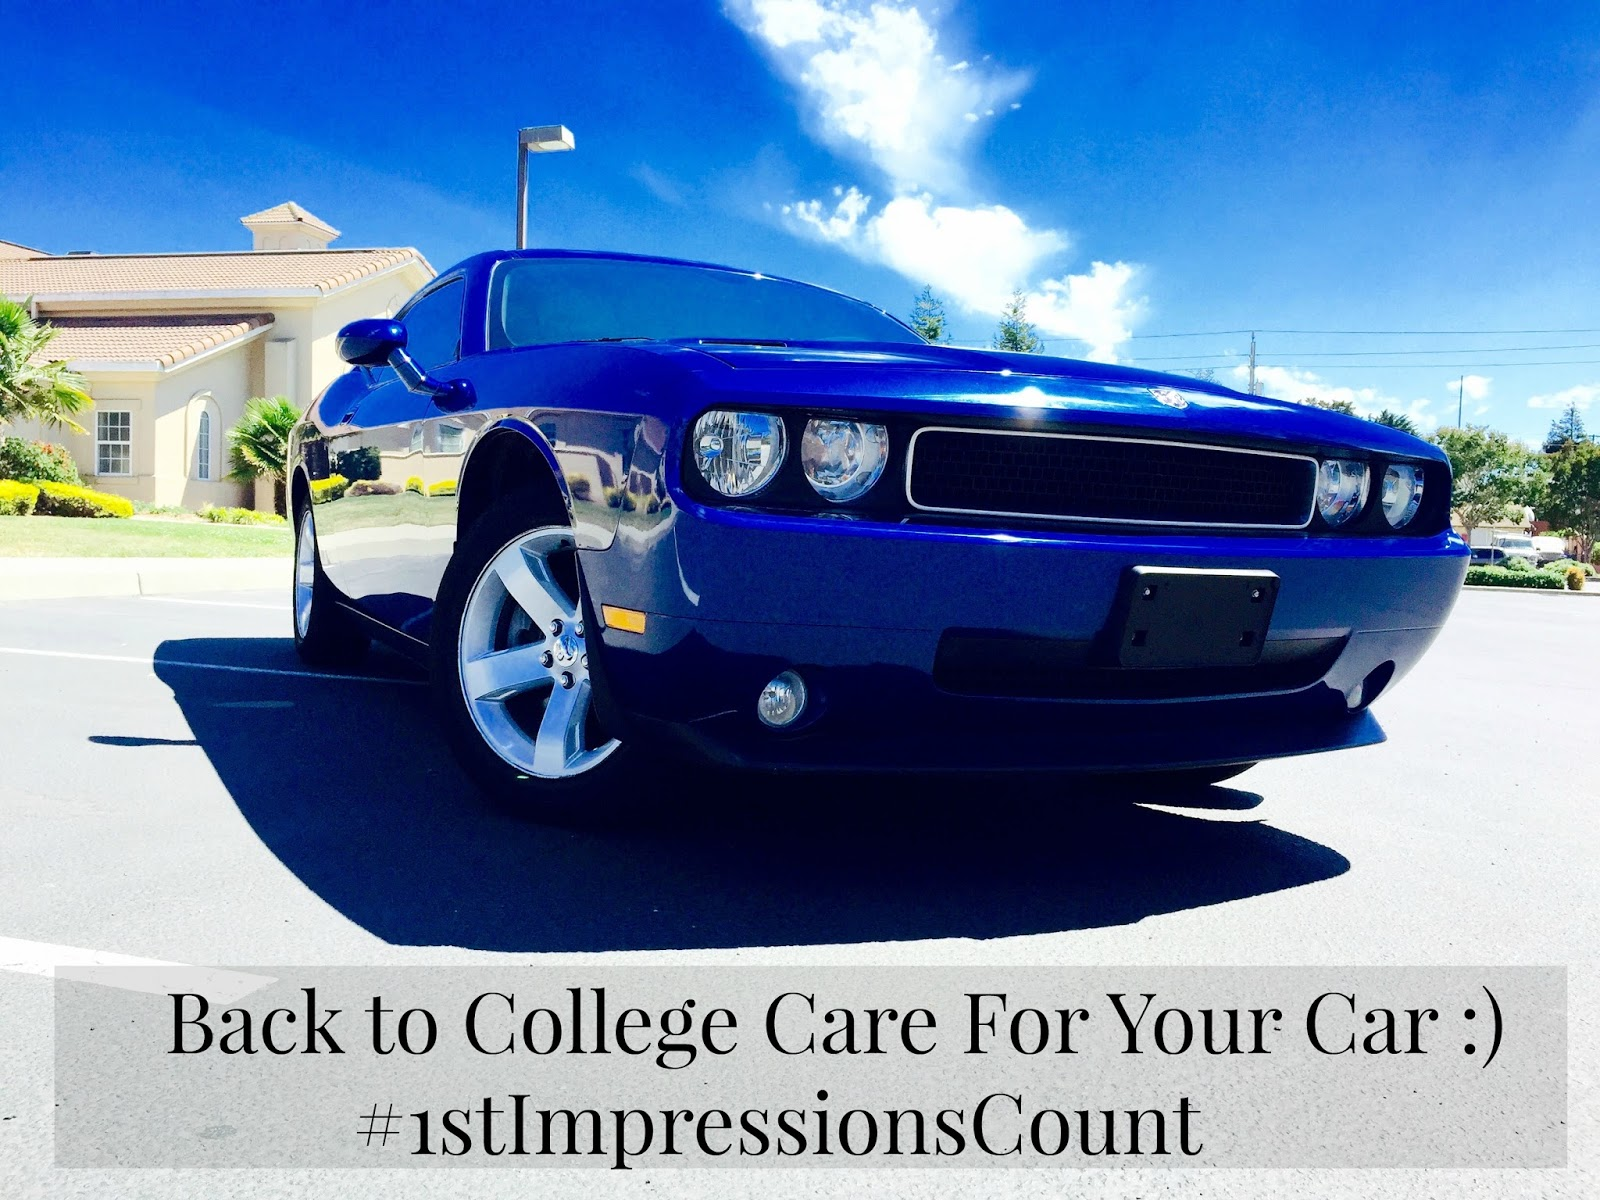 dodge challenger, #1stimpressionscount, back to college, care for your car, how to make your dodge challenger look amazing, armor all outlast, back to college with armor all outlast, pretty car, how to take care of your car,